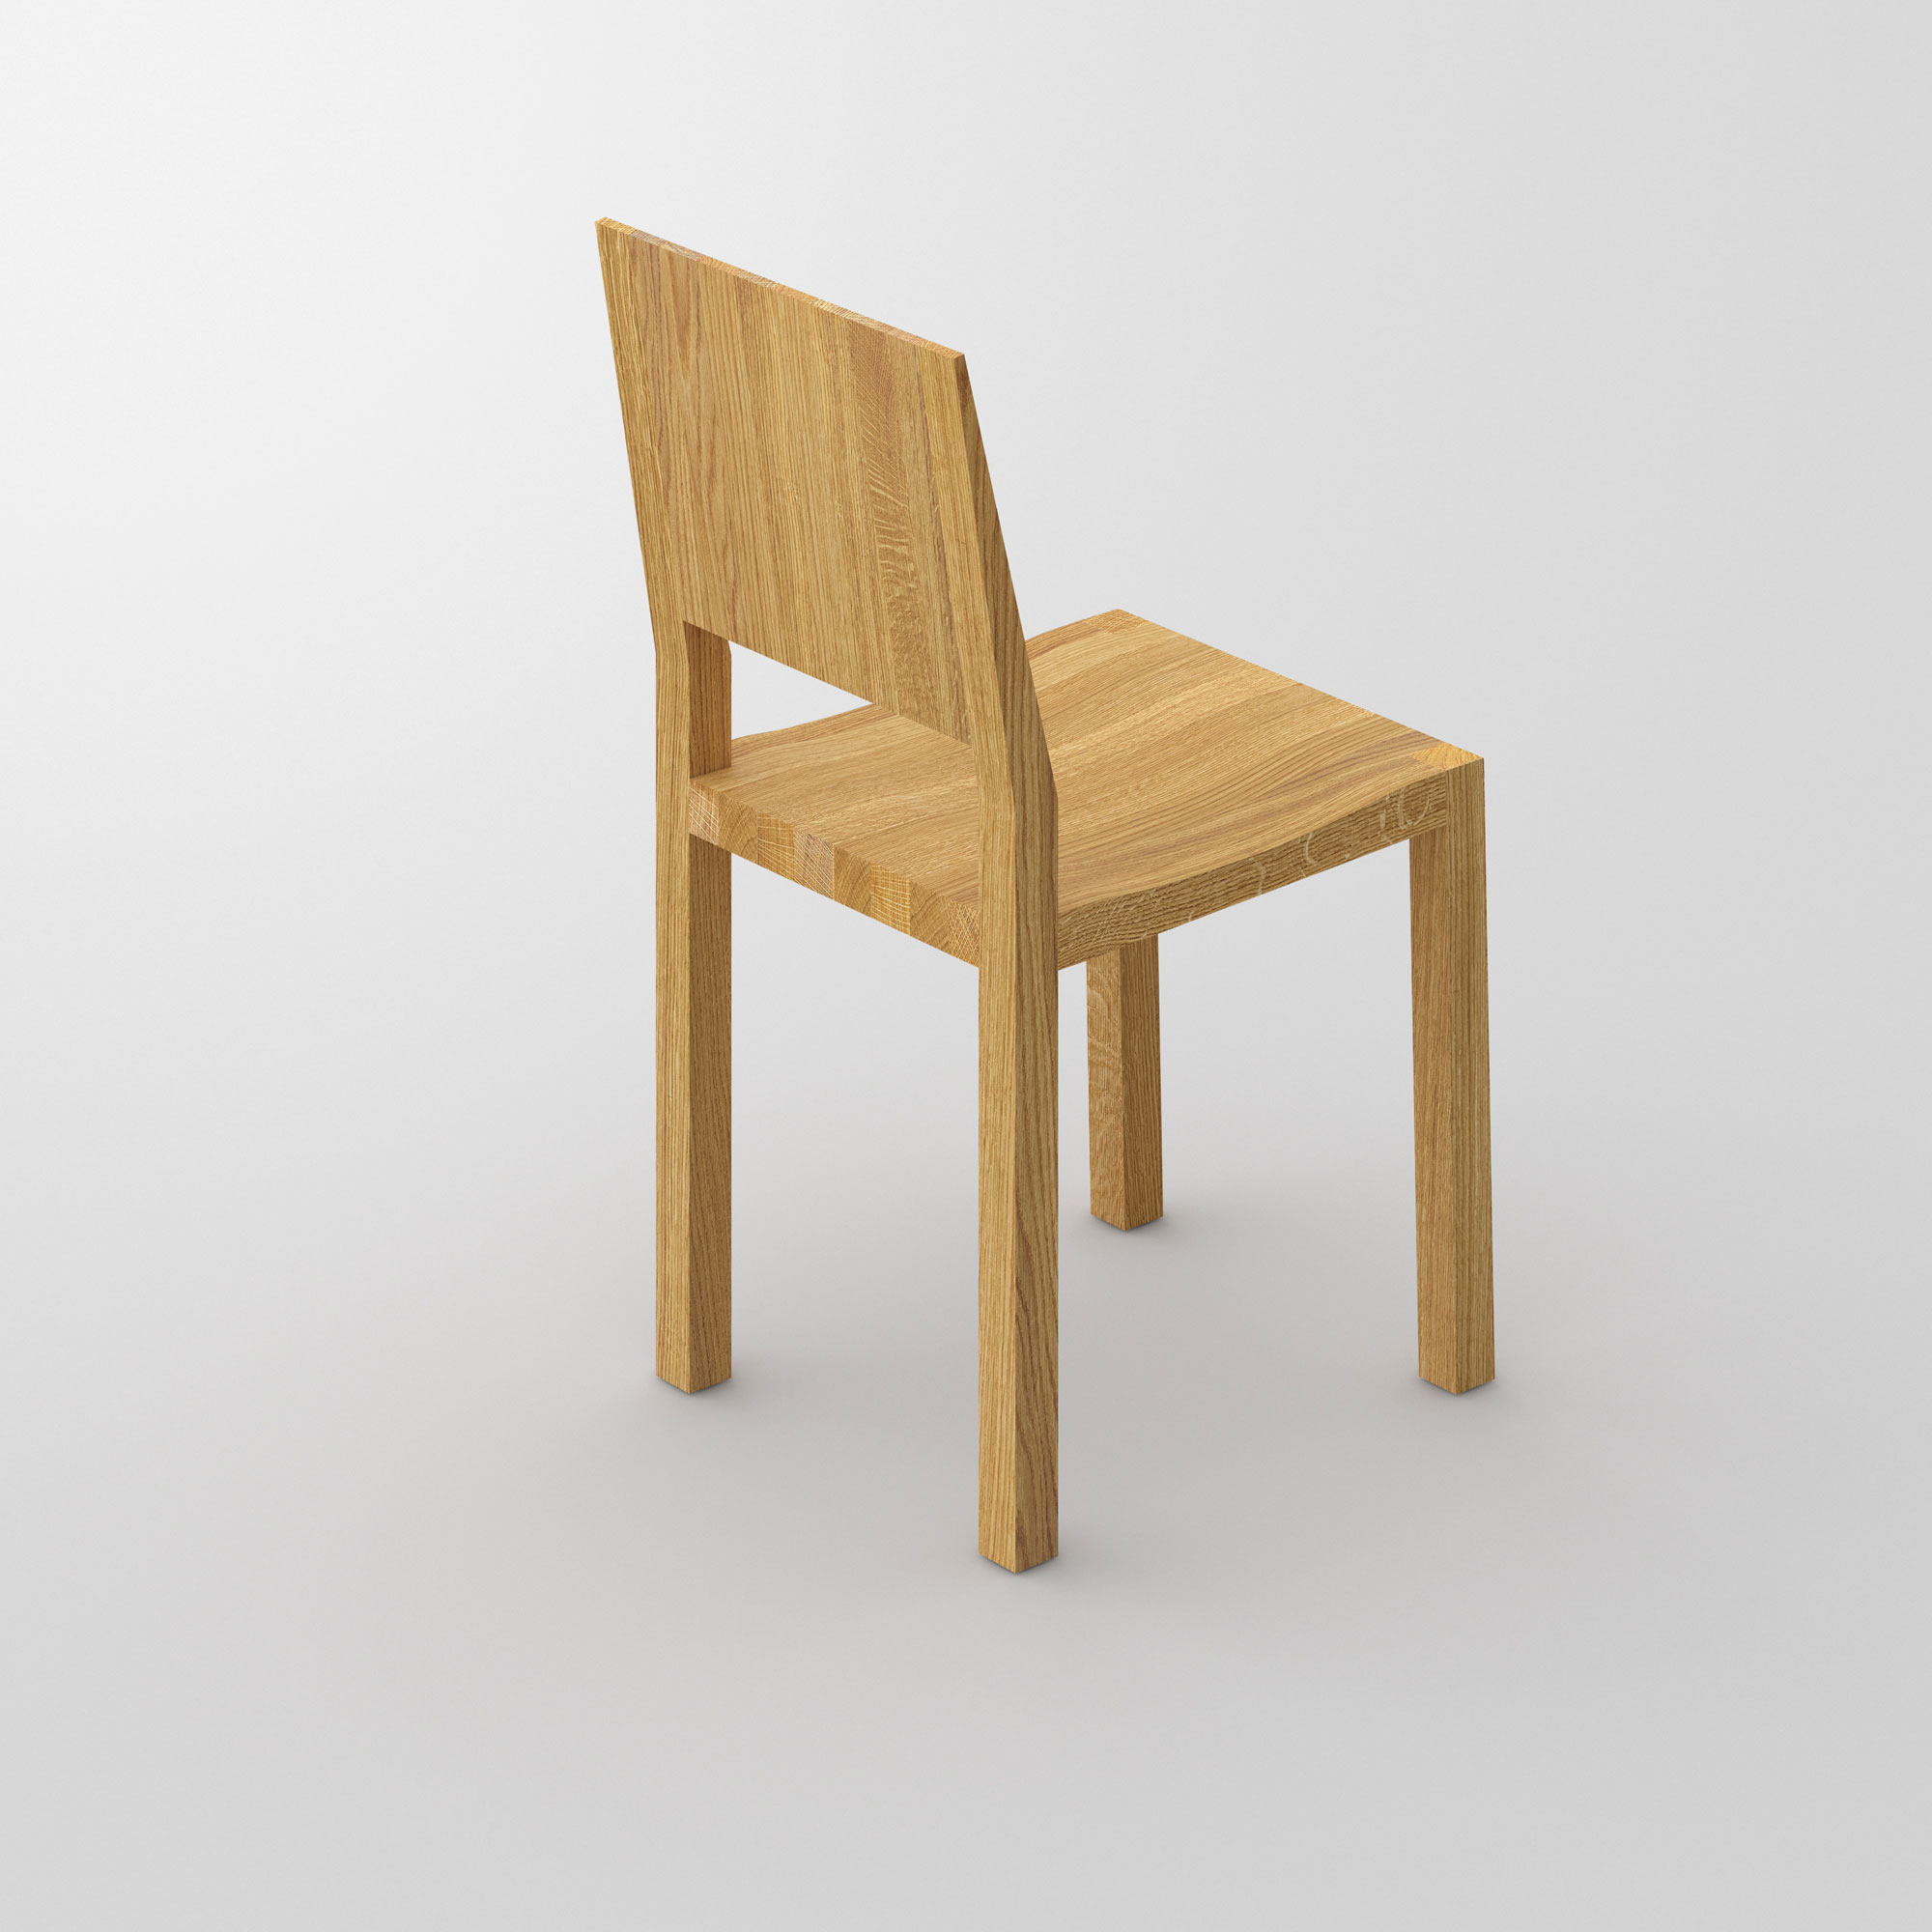 Solid Wood Chair TAU cam3 custom made in solid wood by vitamin design